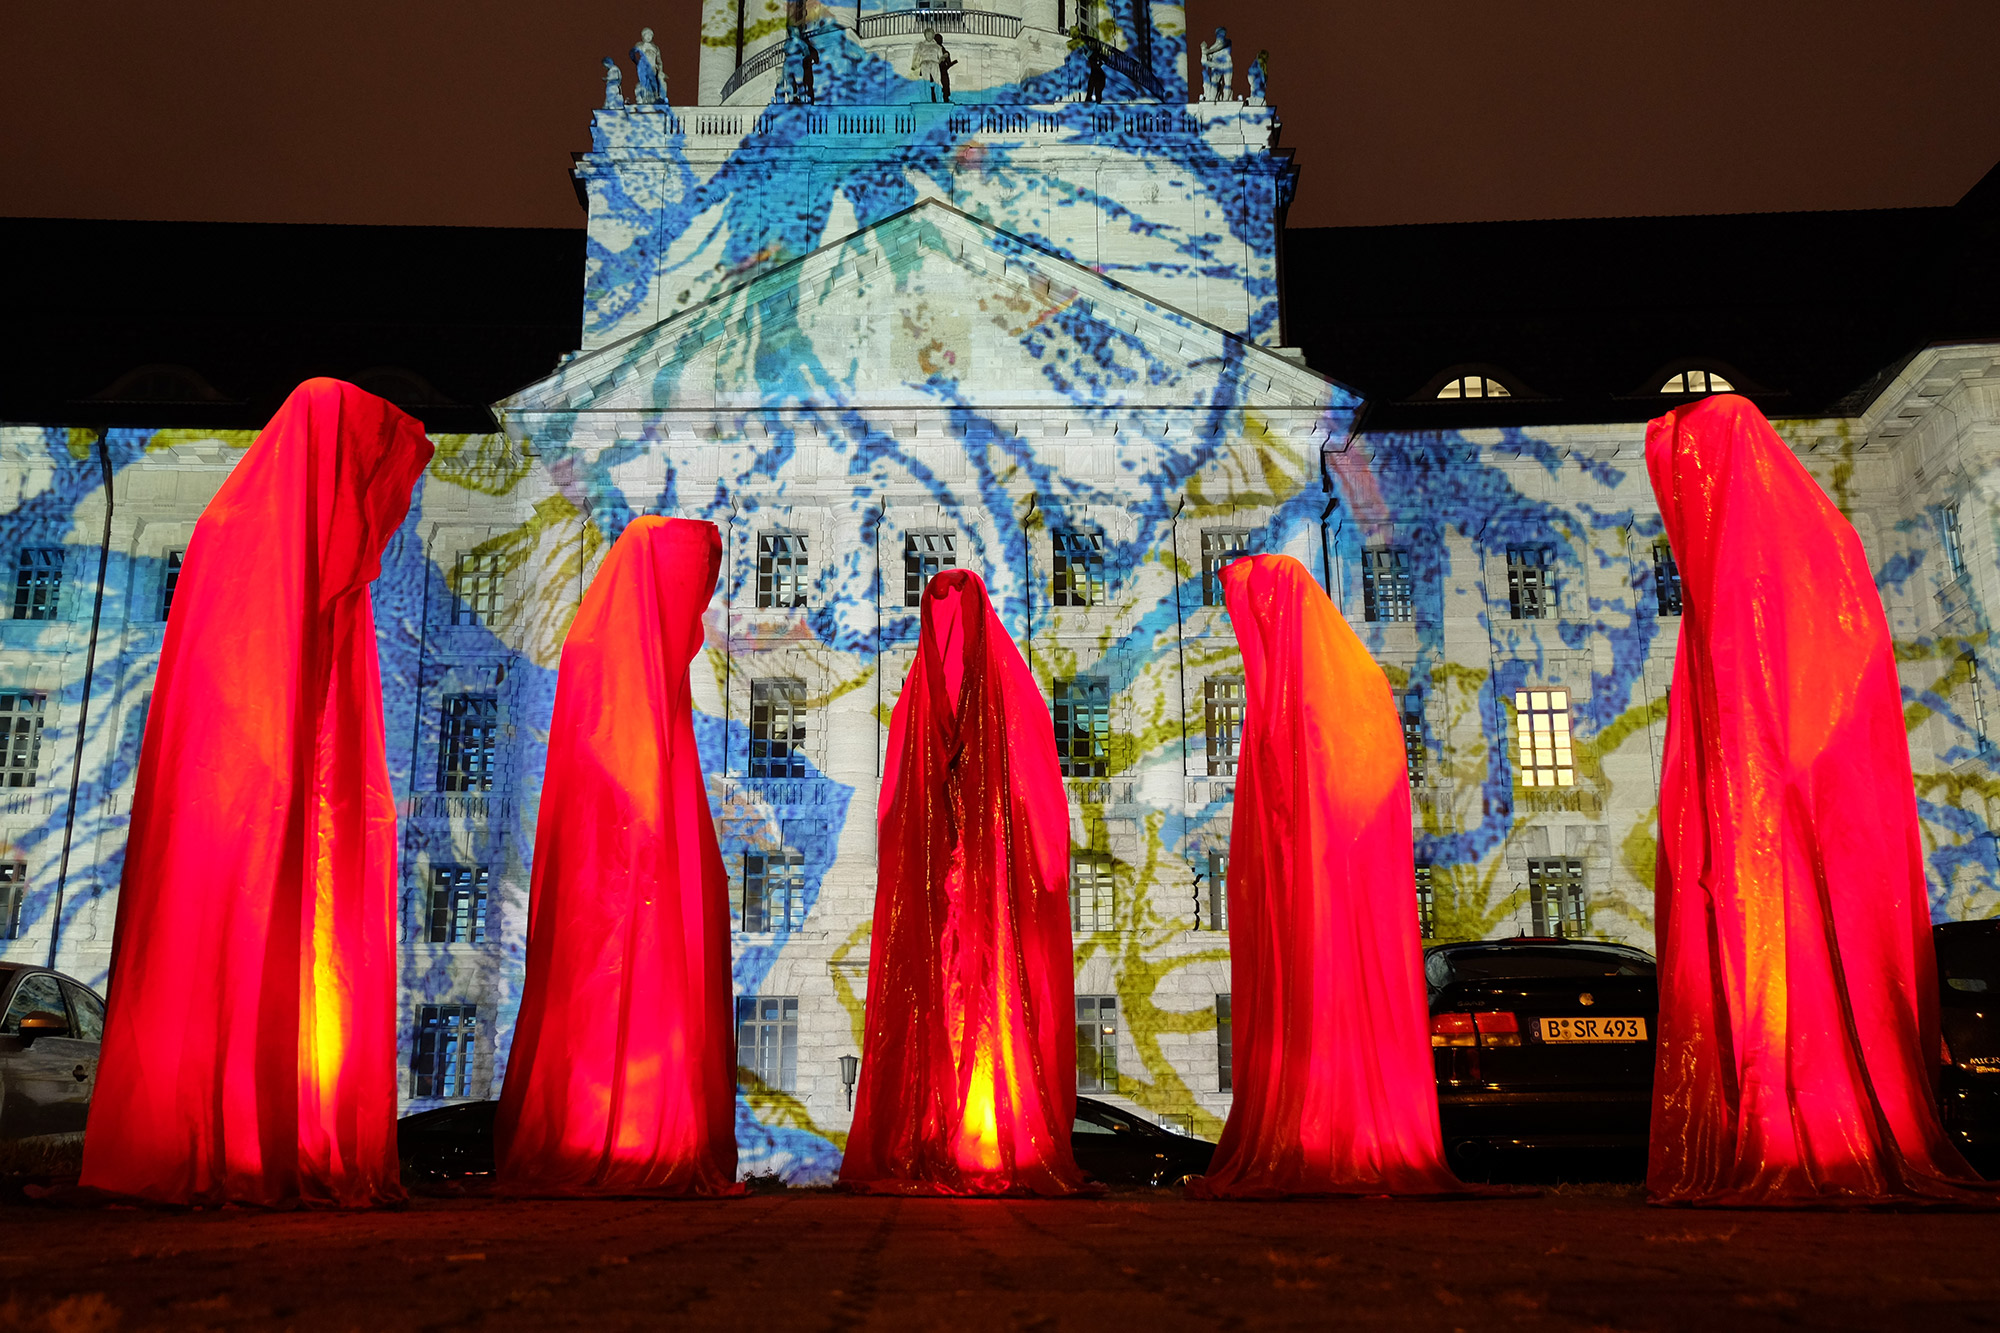 festival-of-lights-berlin-guardians-of-time-manfred-kielnhofer-lumina-light-contemporary-art-design-statue-sculpture-fineart-ghost-faceless-no-face-9250